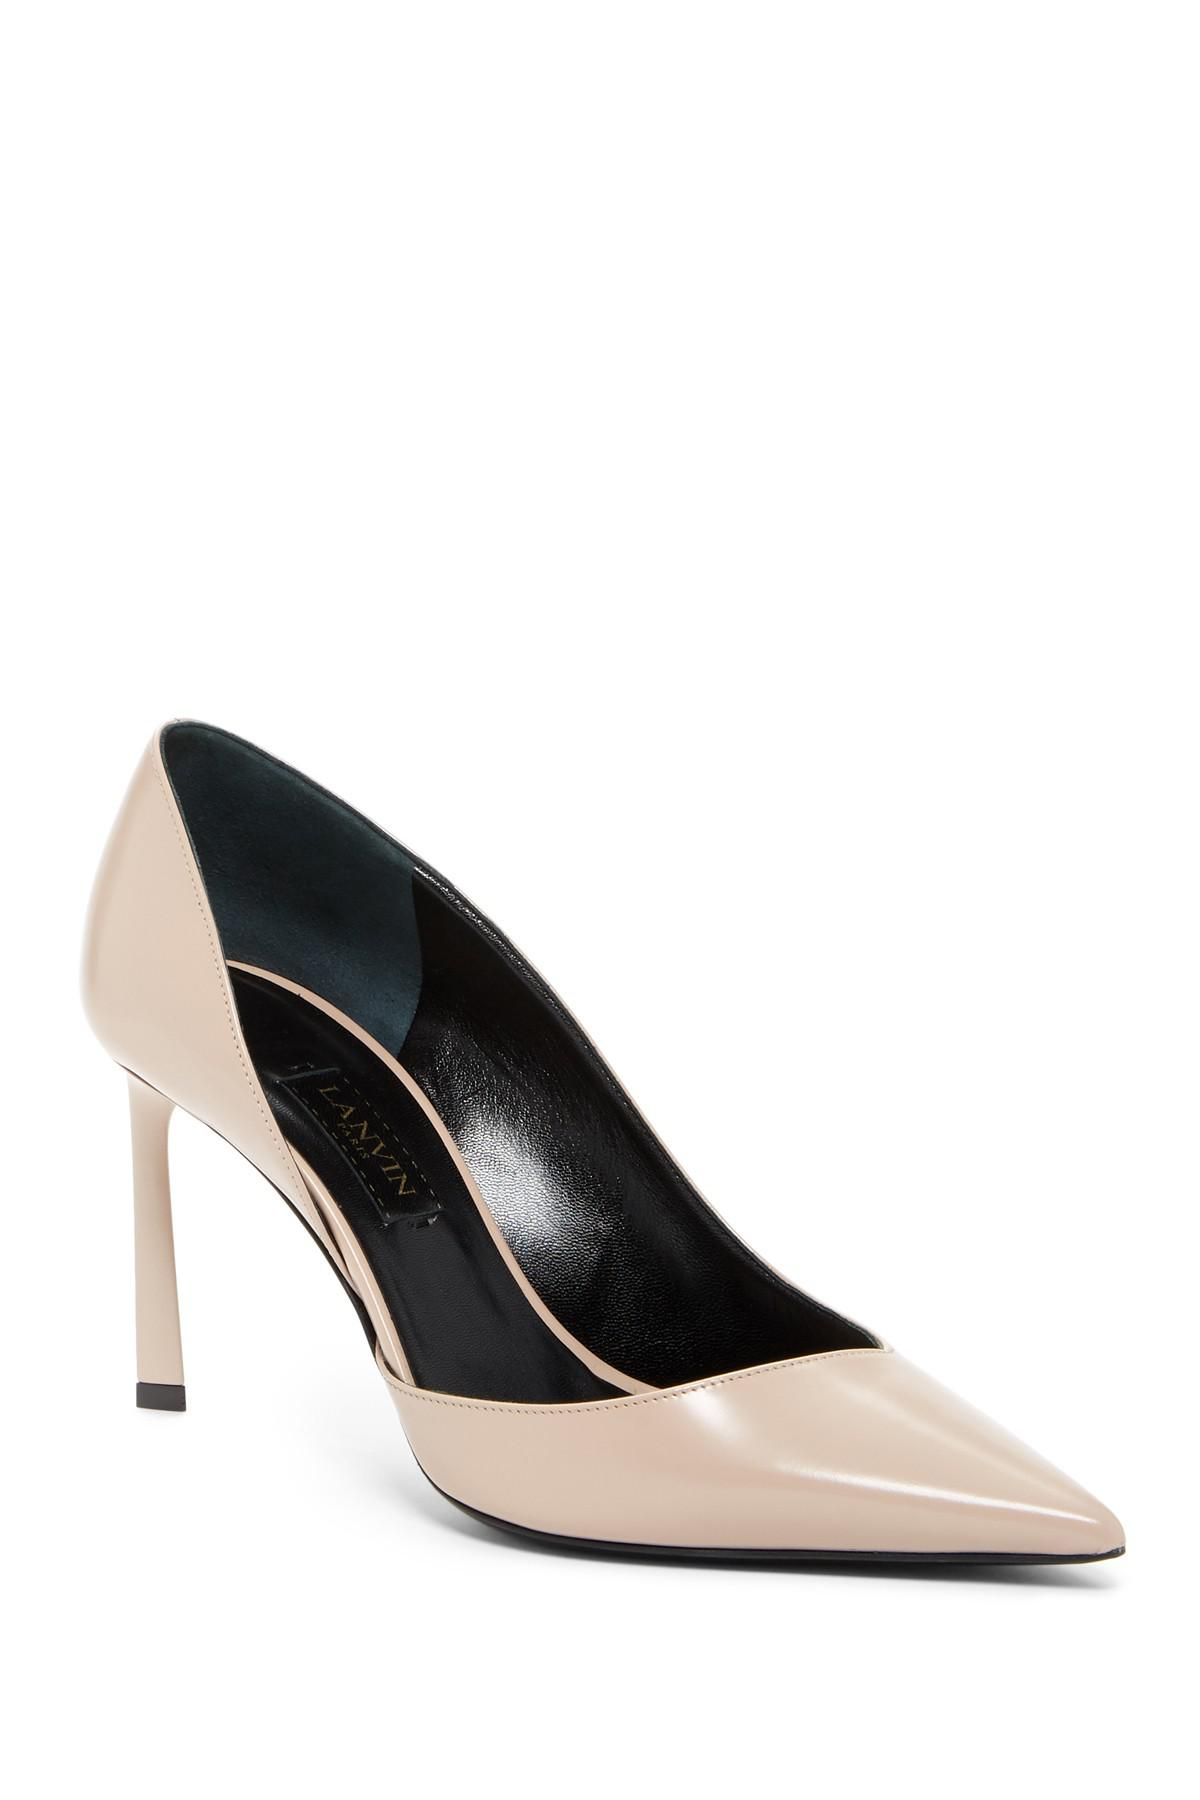 order sale online free shipping 2014 Lanvin Pointed-Toe Leather Pumps with paypal extremely cheap online AM4wXx